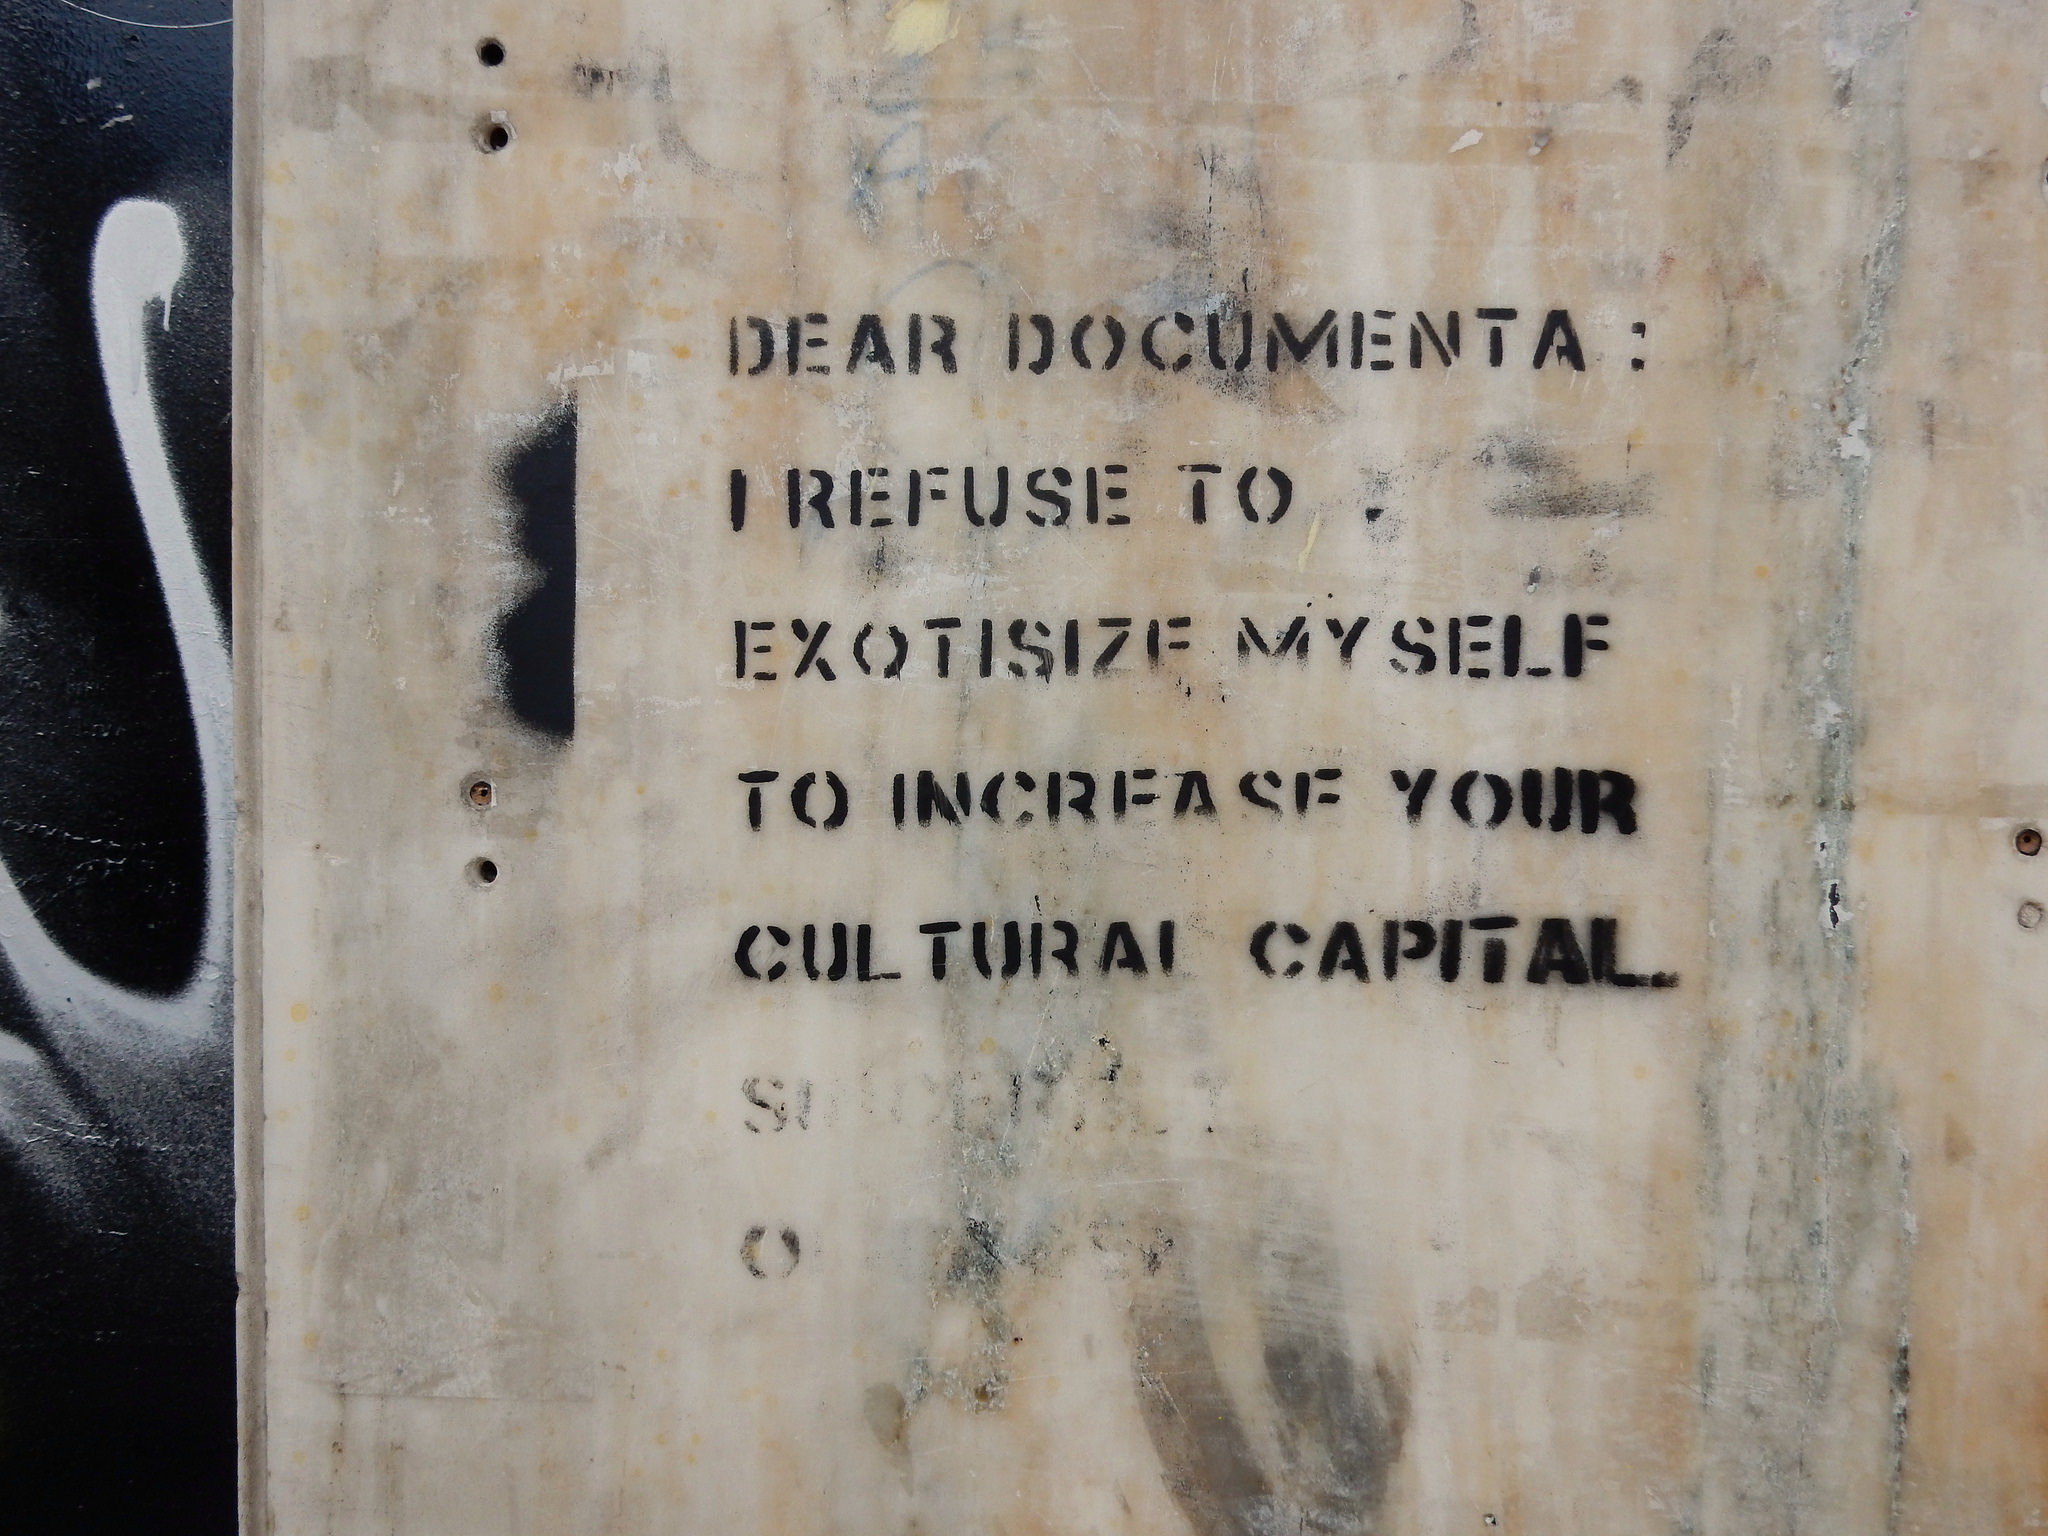 Sincerely, the Indigenous: Street Level Responses to Documenta 14 in Athens